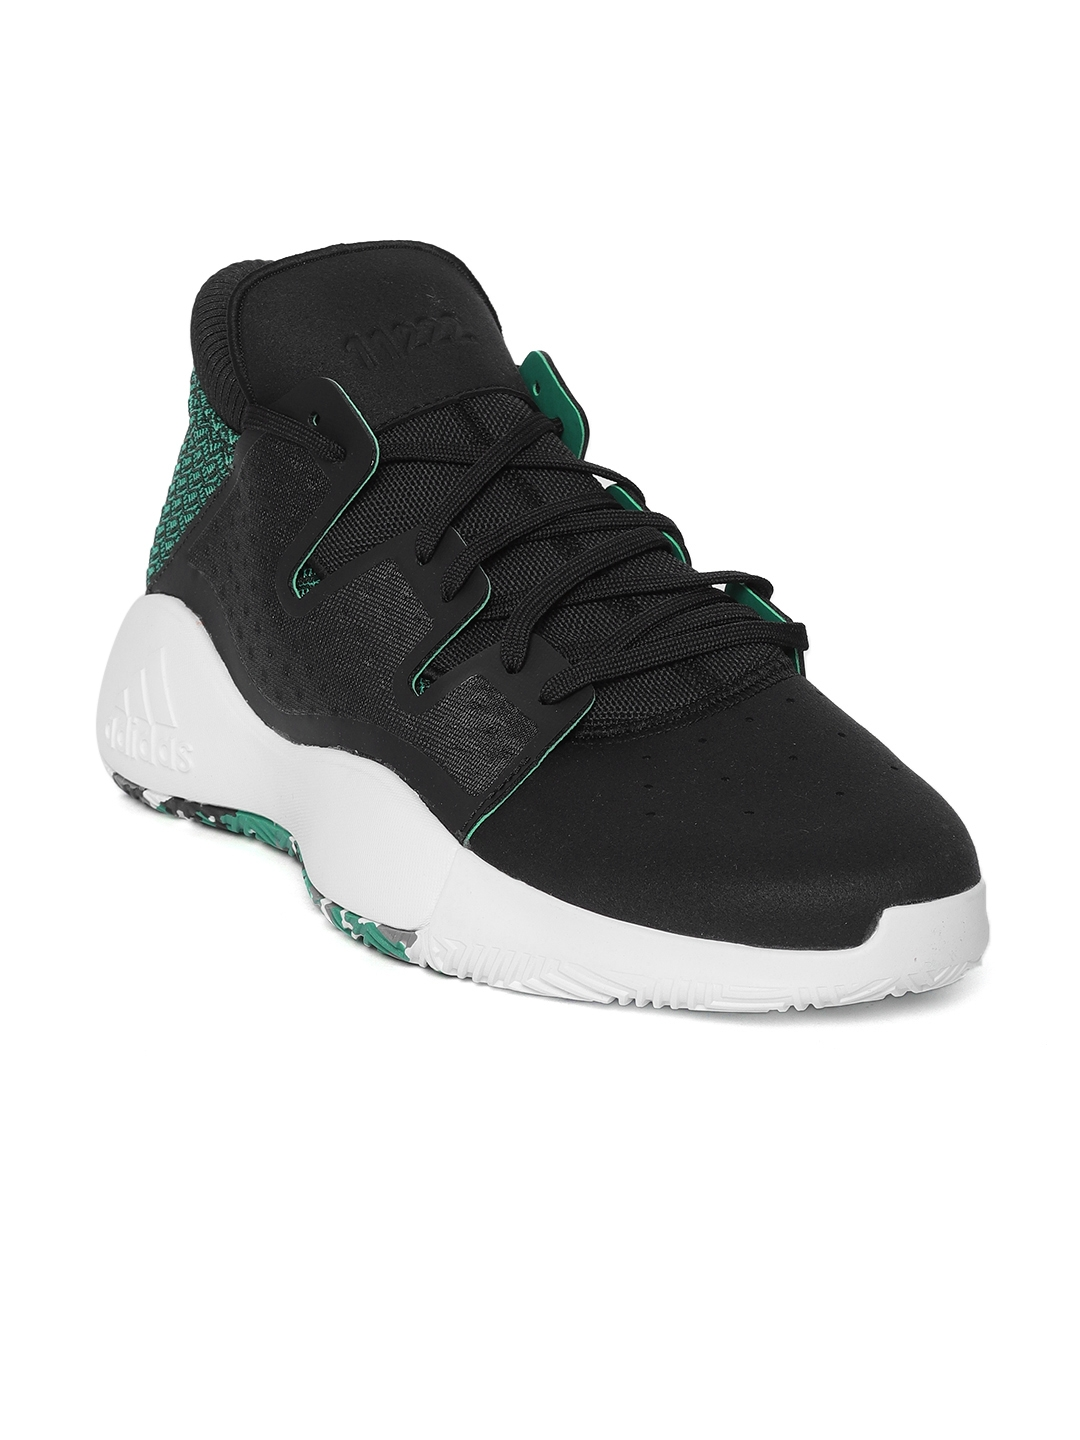 outlet store 25d7a 7c78f ADIDAS Men Black Pro Vision Basketball Shoes